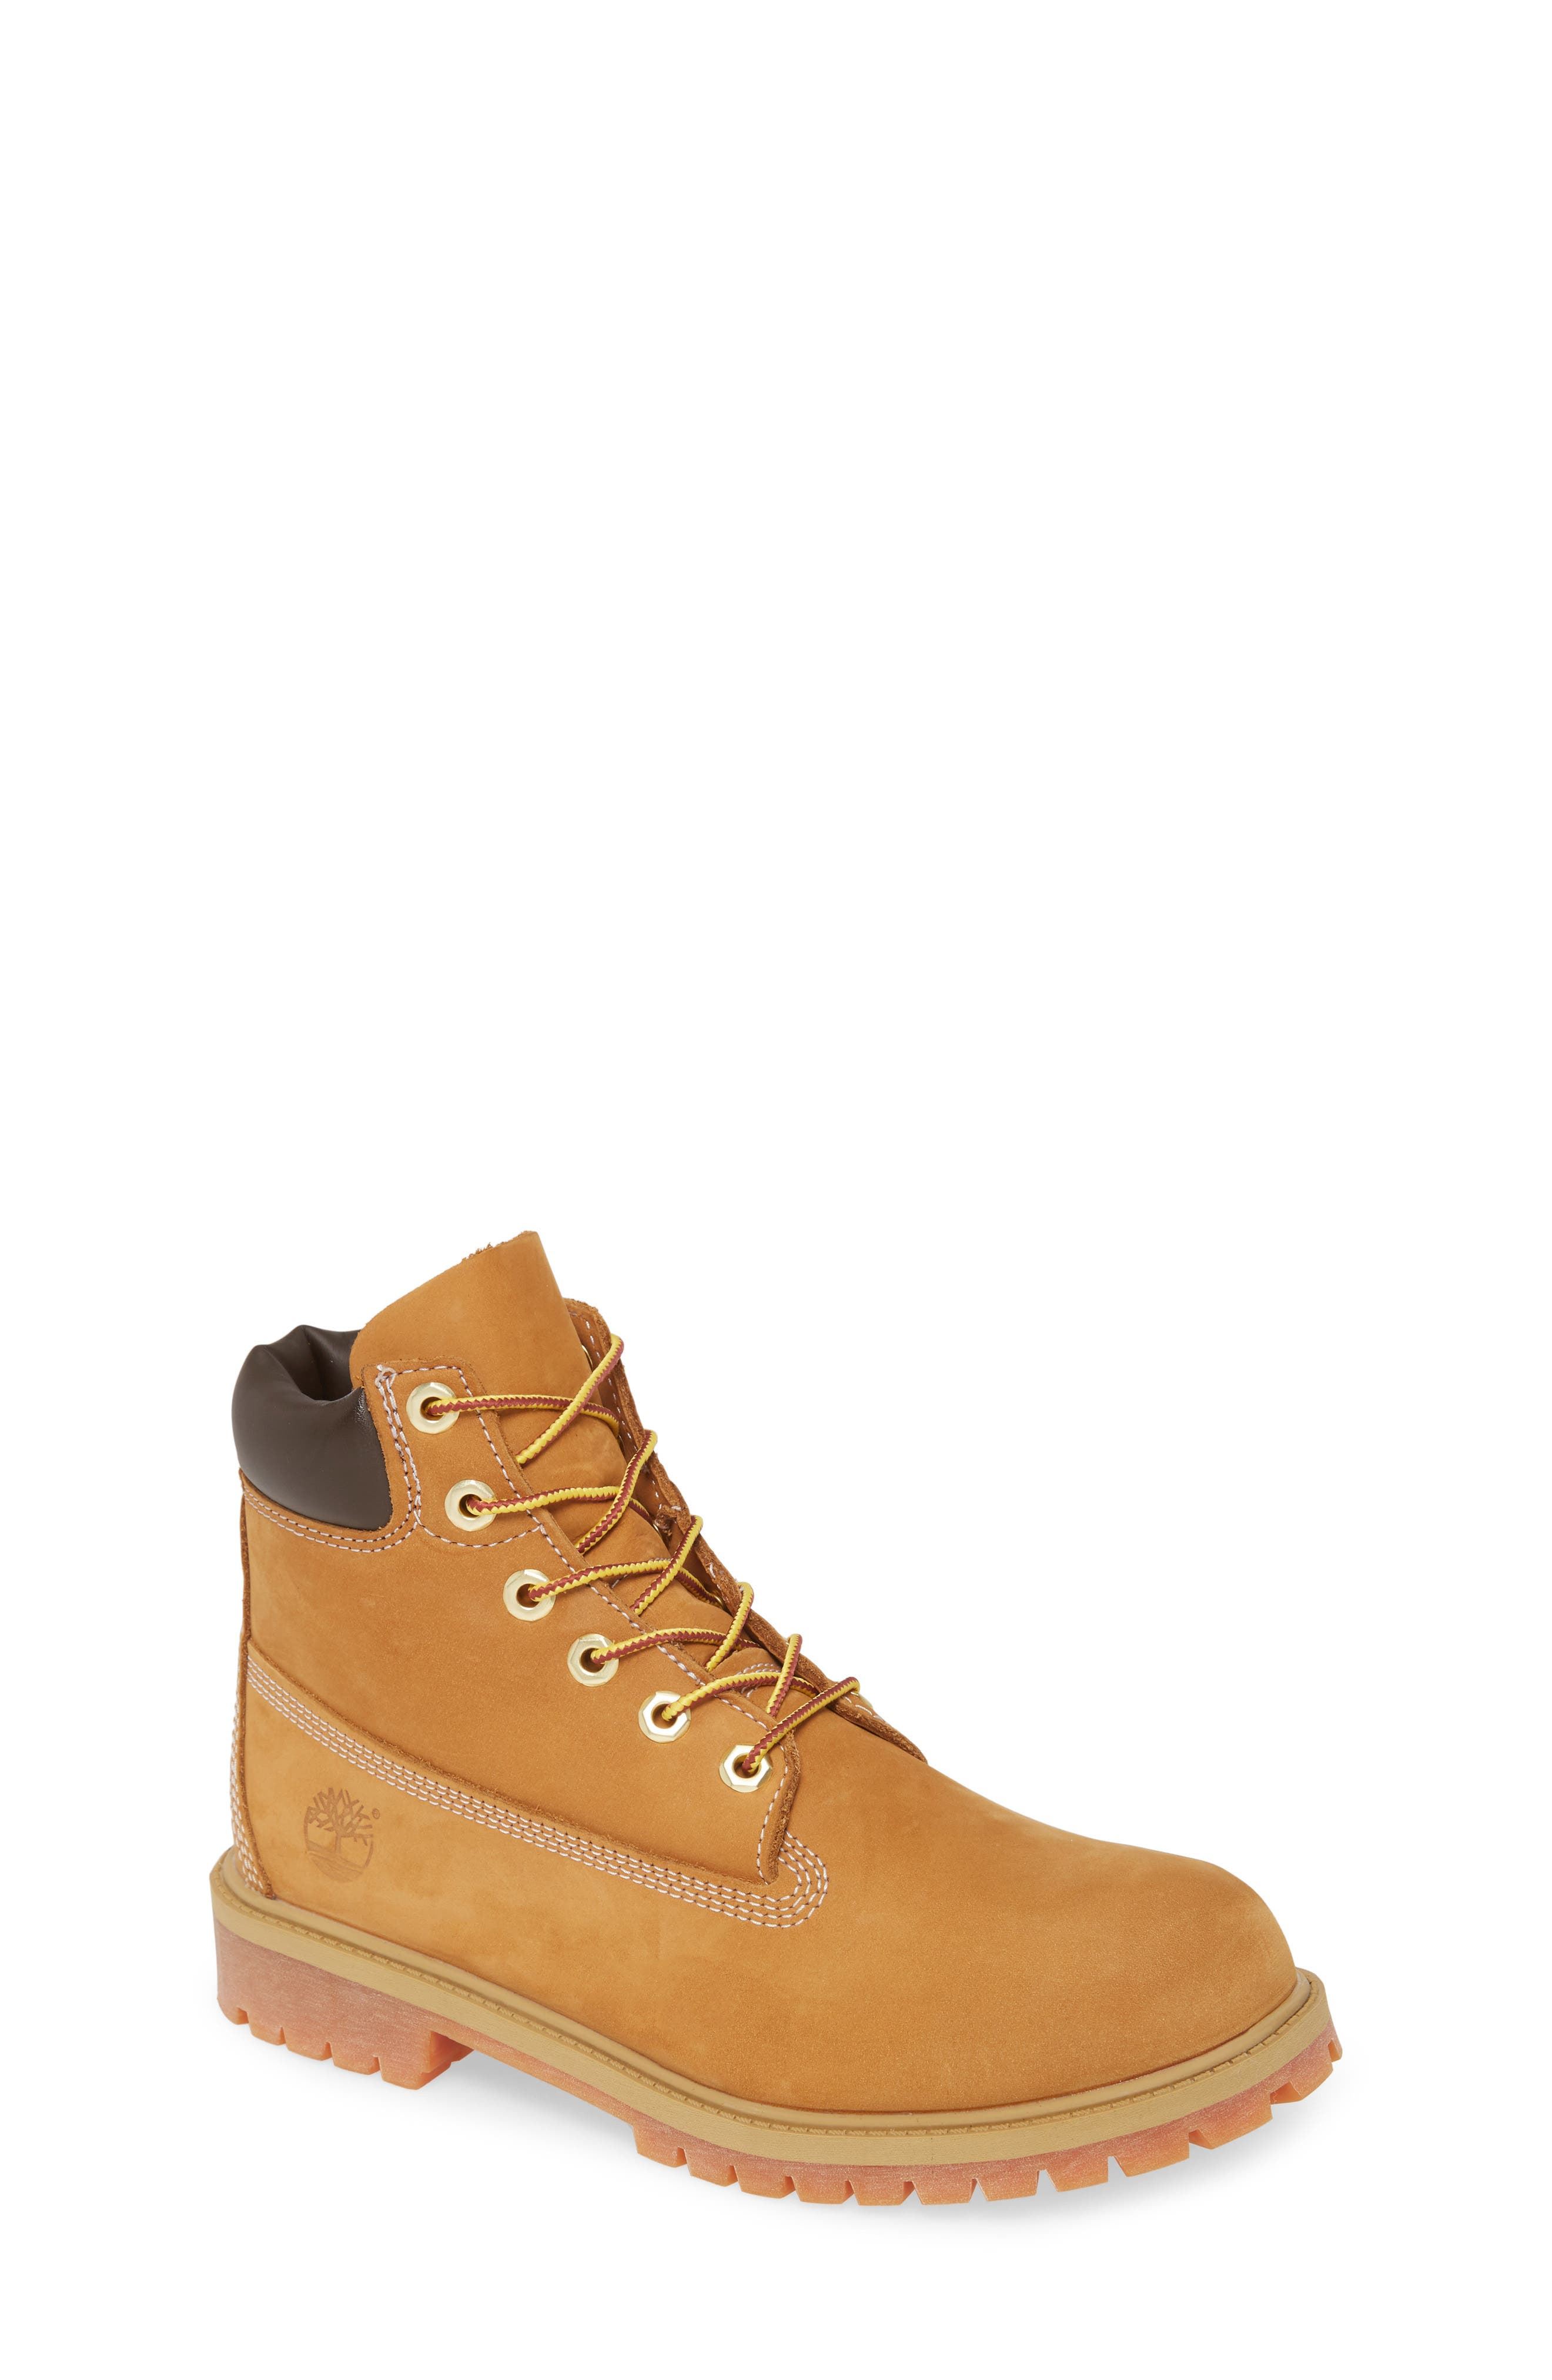 Girls' Timberland Shoes